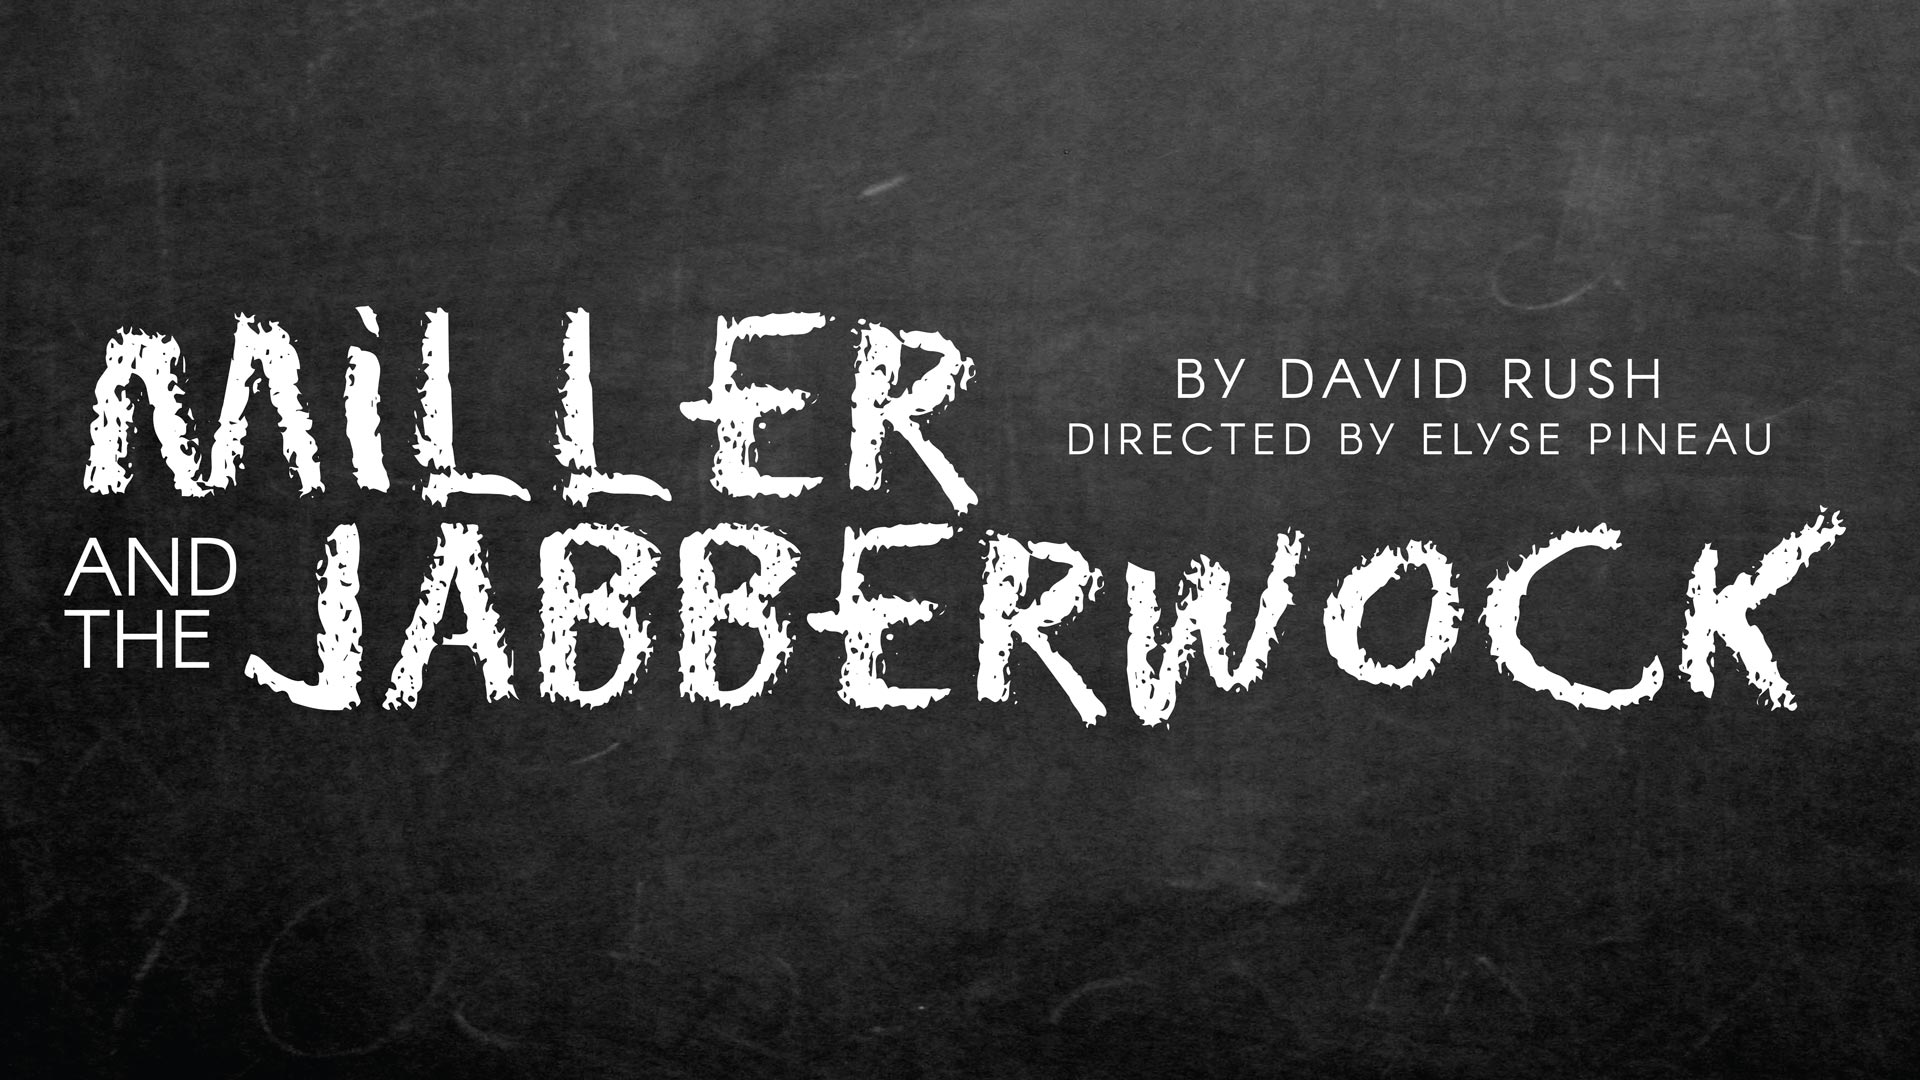 Miller and the Jabberwock by David Rush